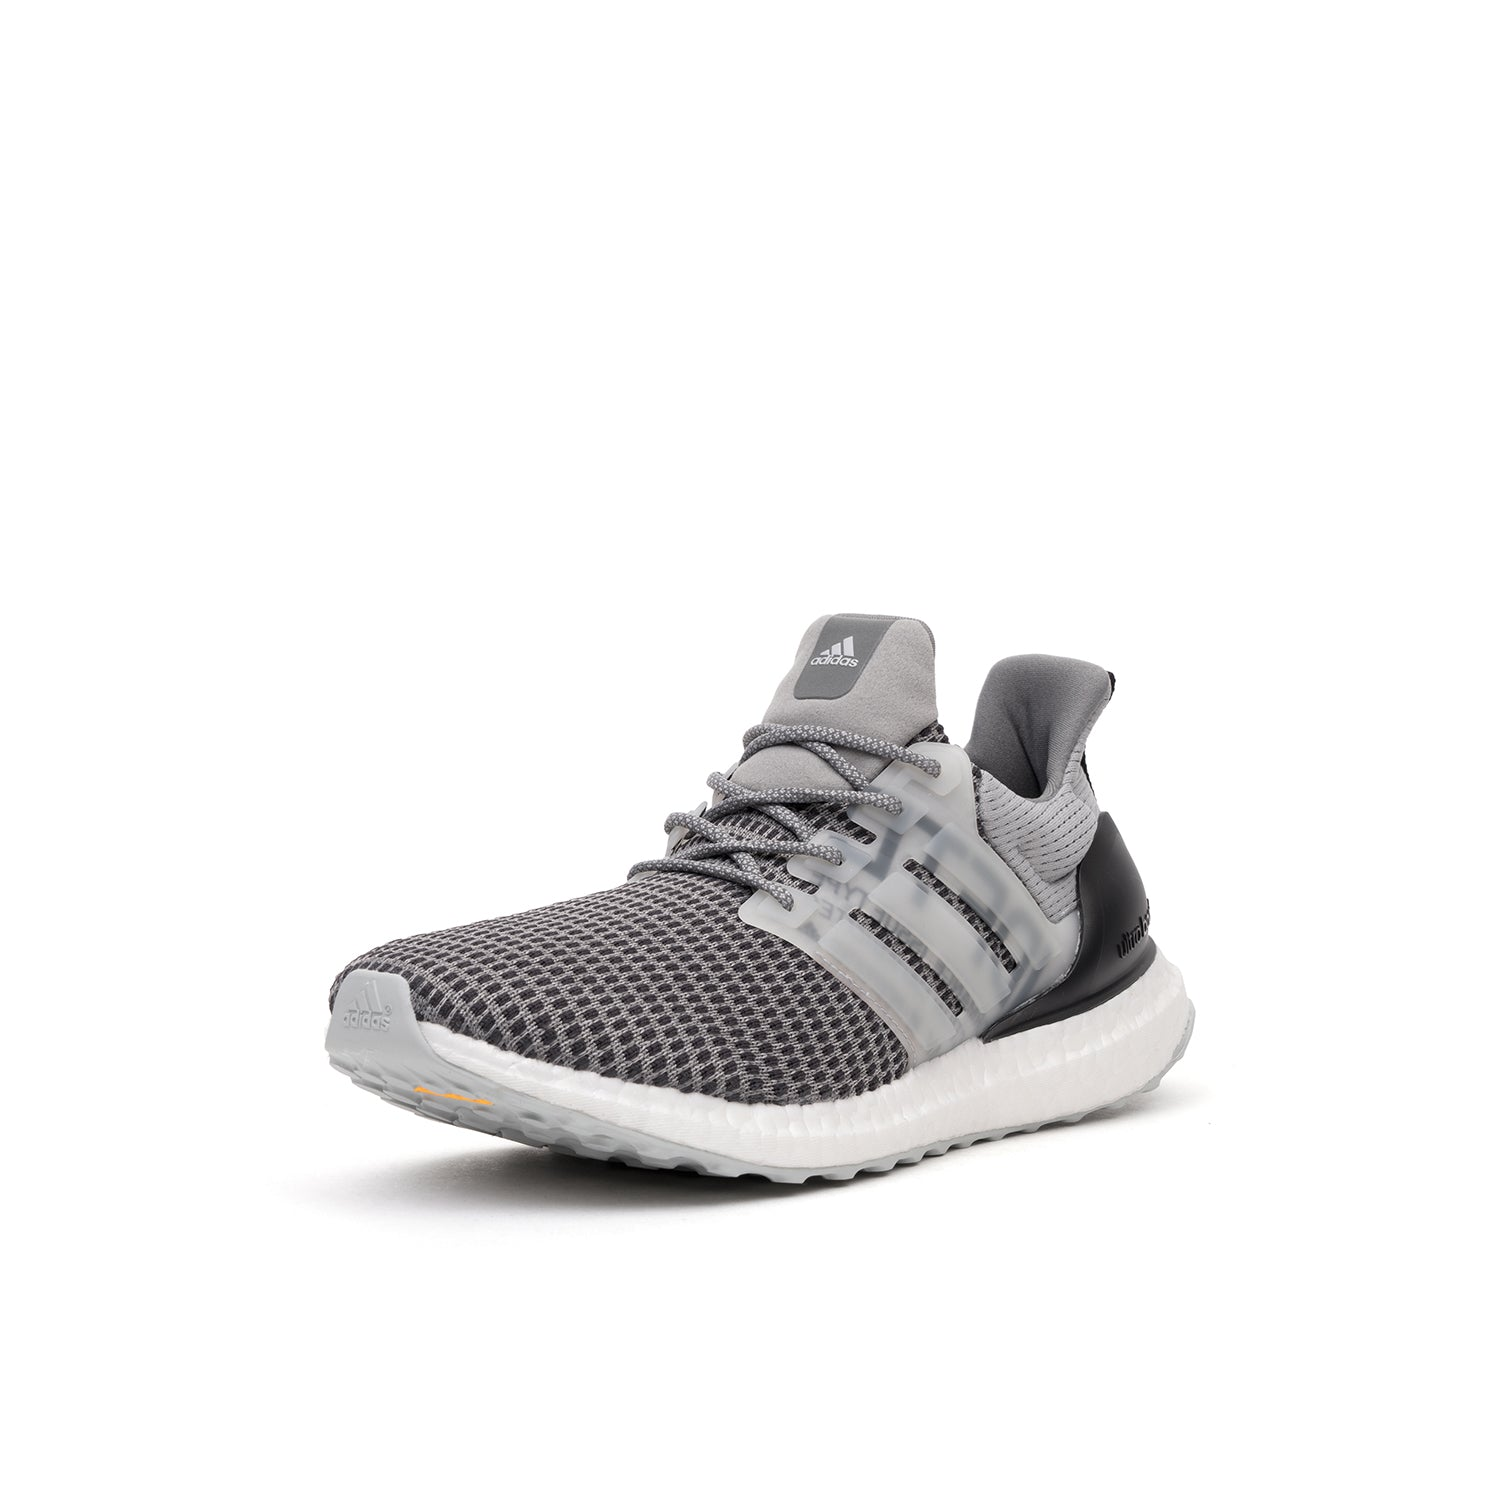 687907d1c29 adidas Originals x UNDFTD Ultra Boost Shift Grey   Cinder   Utility Black